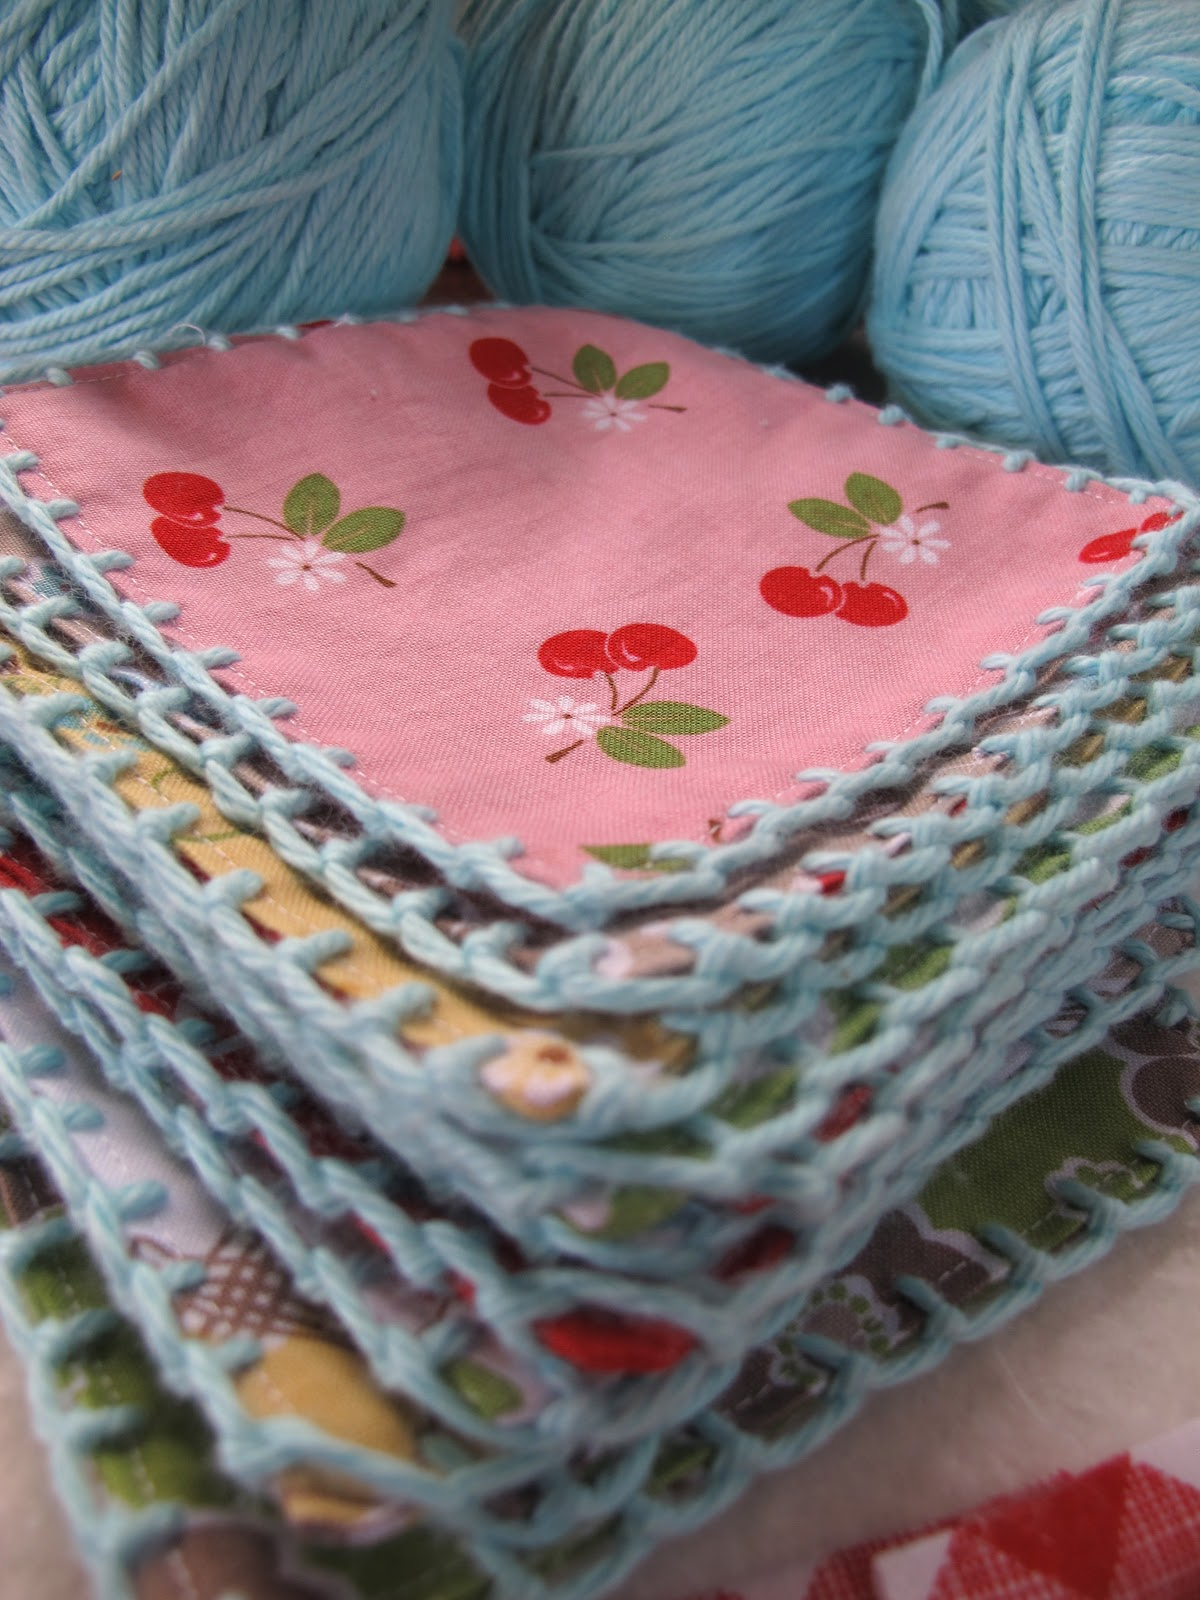 Crocheting On Fabric : ... that I love to add crochet edgings on several of my fabric patterns